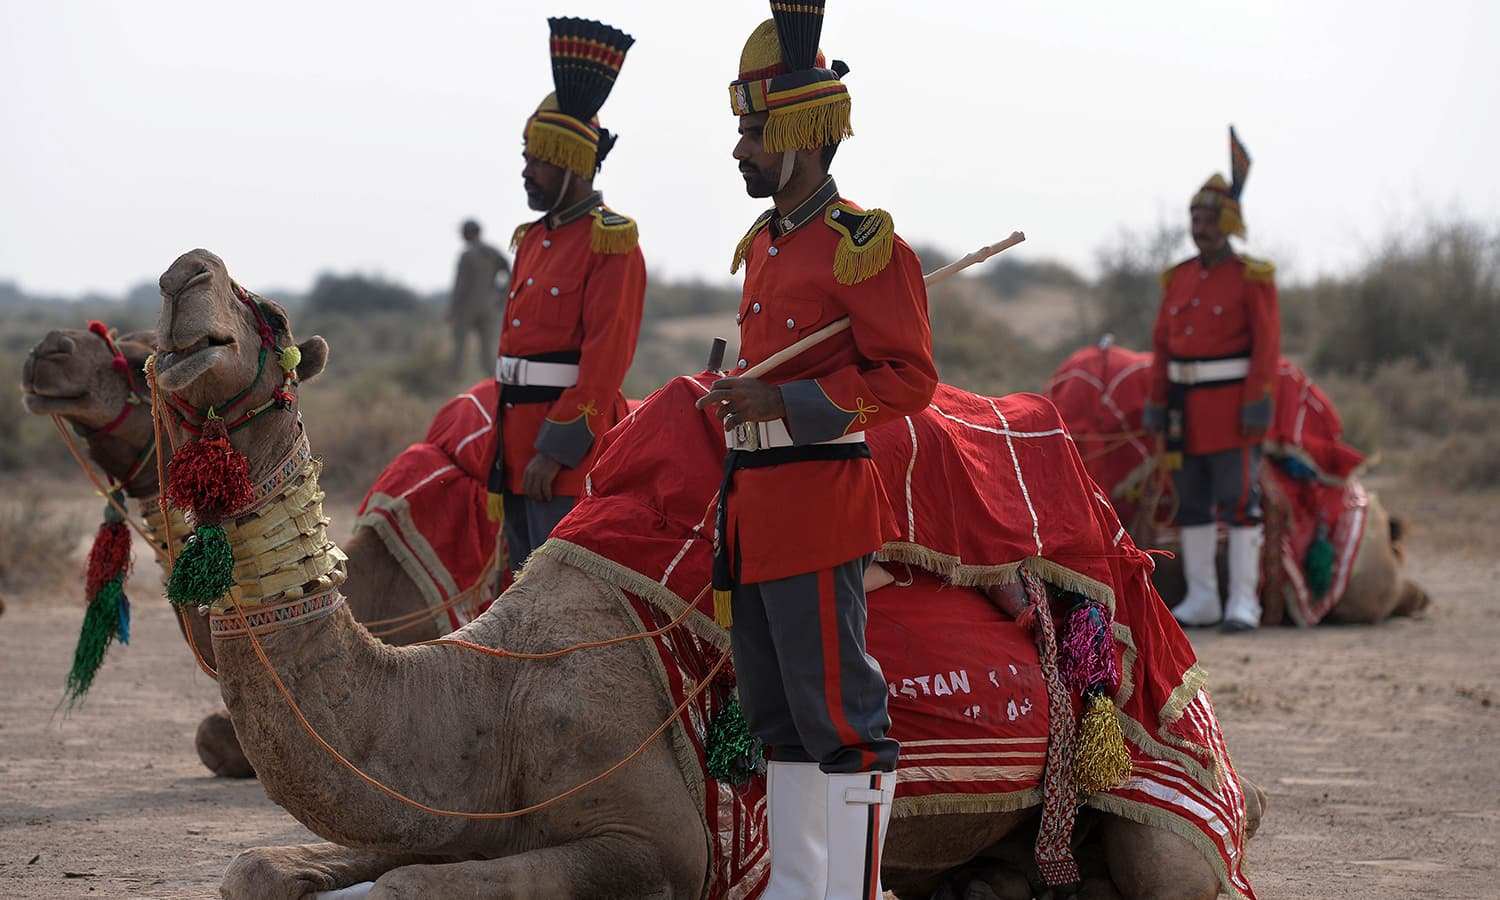 In this photograph taken on November 13, 2015, band members of Pakistan Desert Rangers, stand with their camels before a march in Moj Garh, some 100 kilometres east of Bahawalpur in Punjab province. —AFP